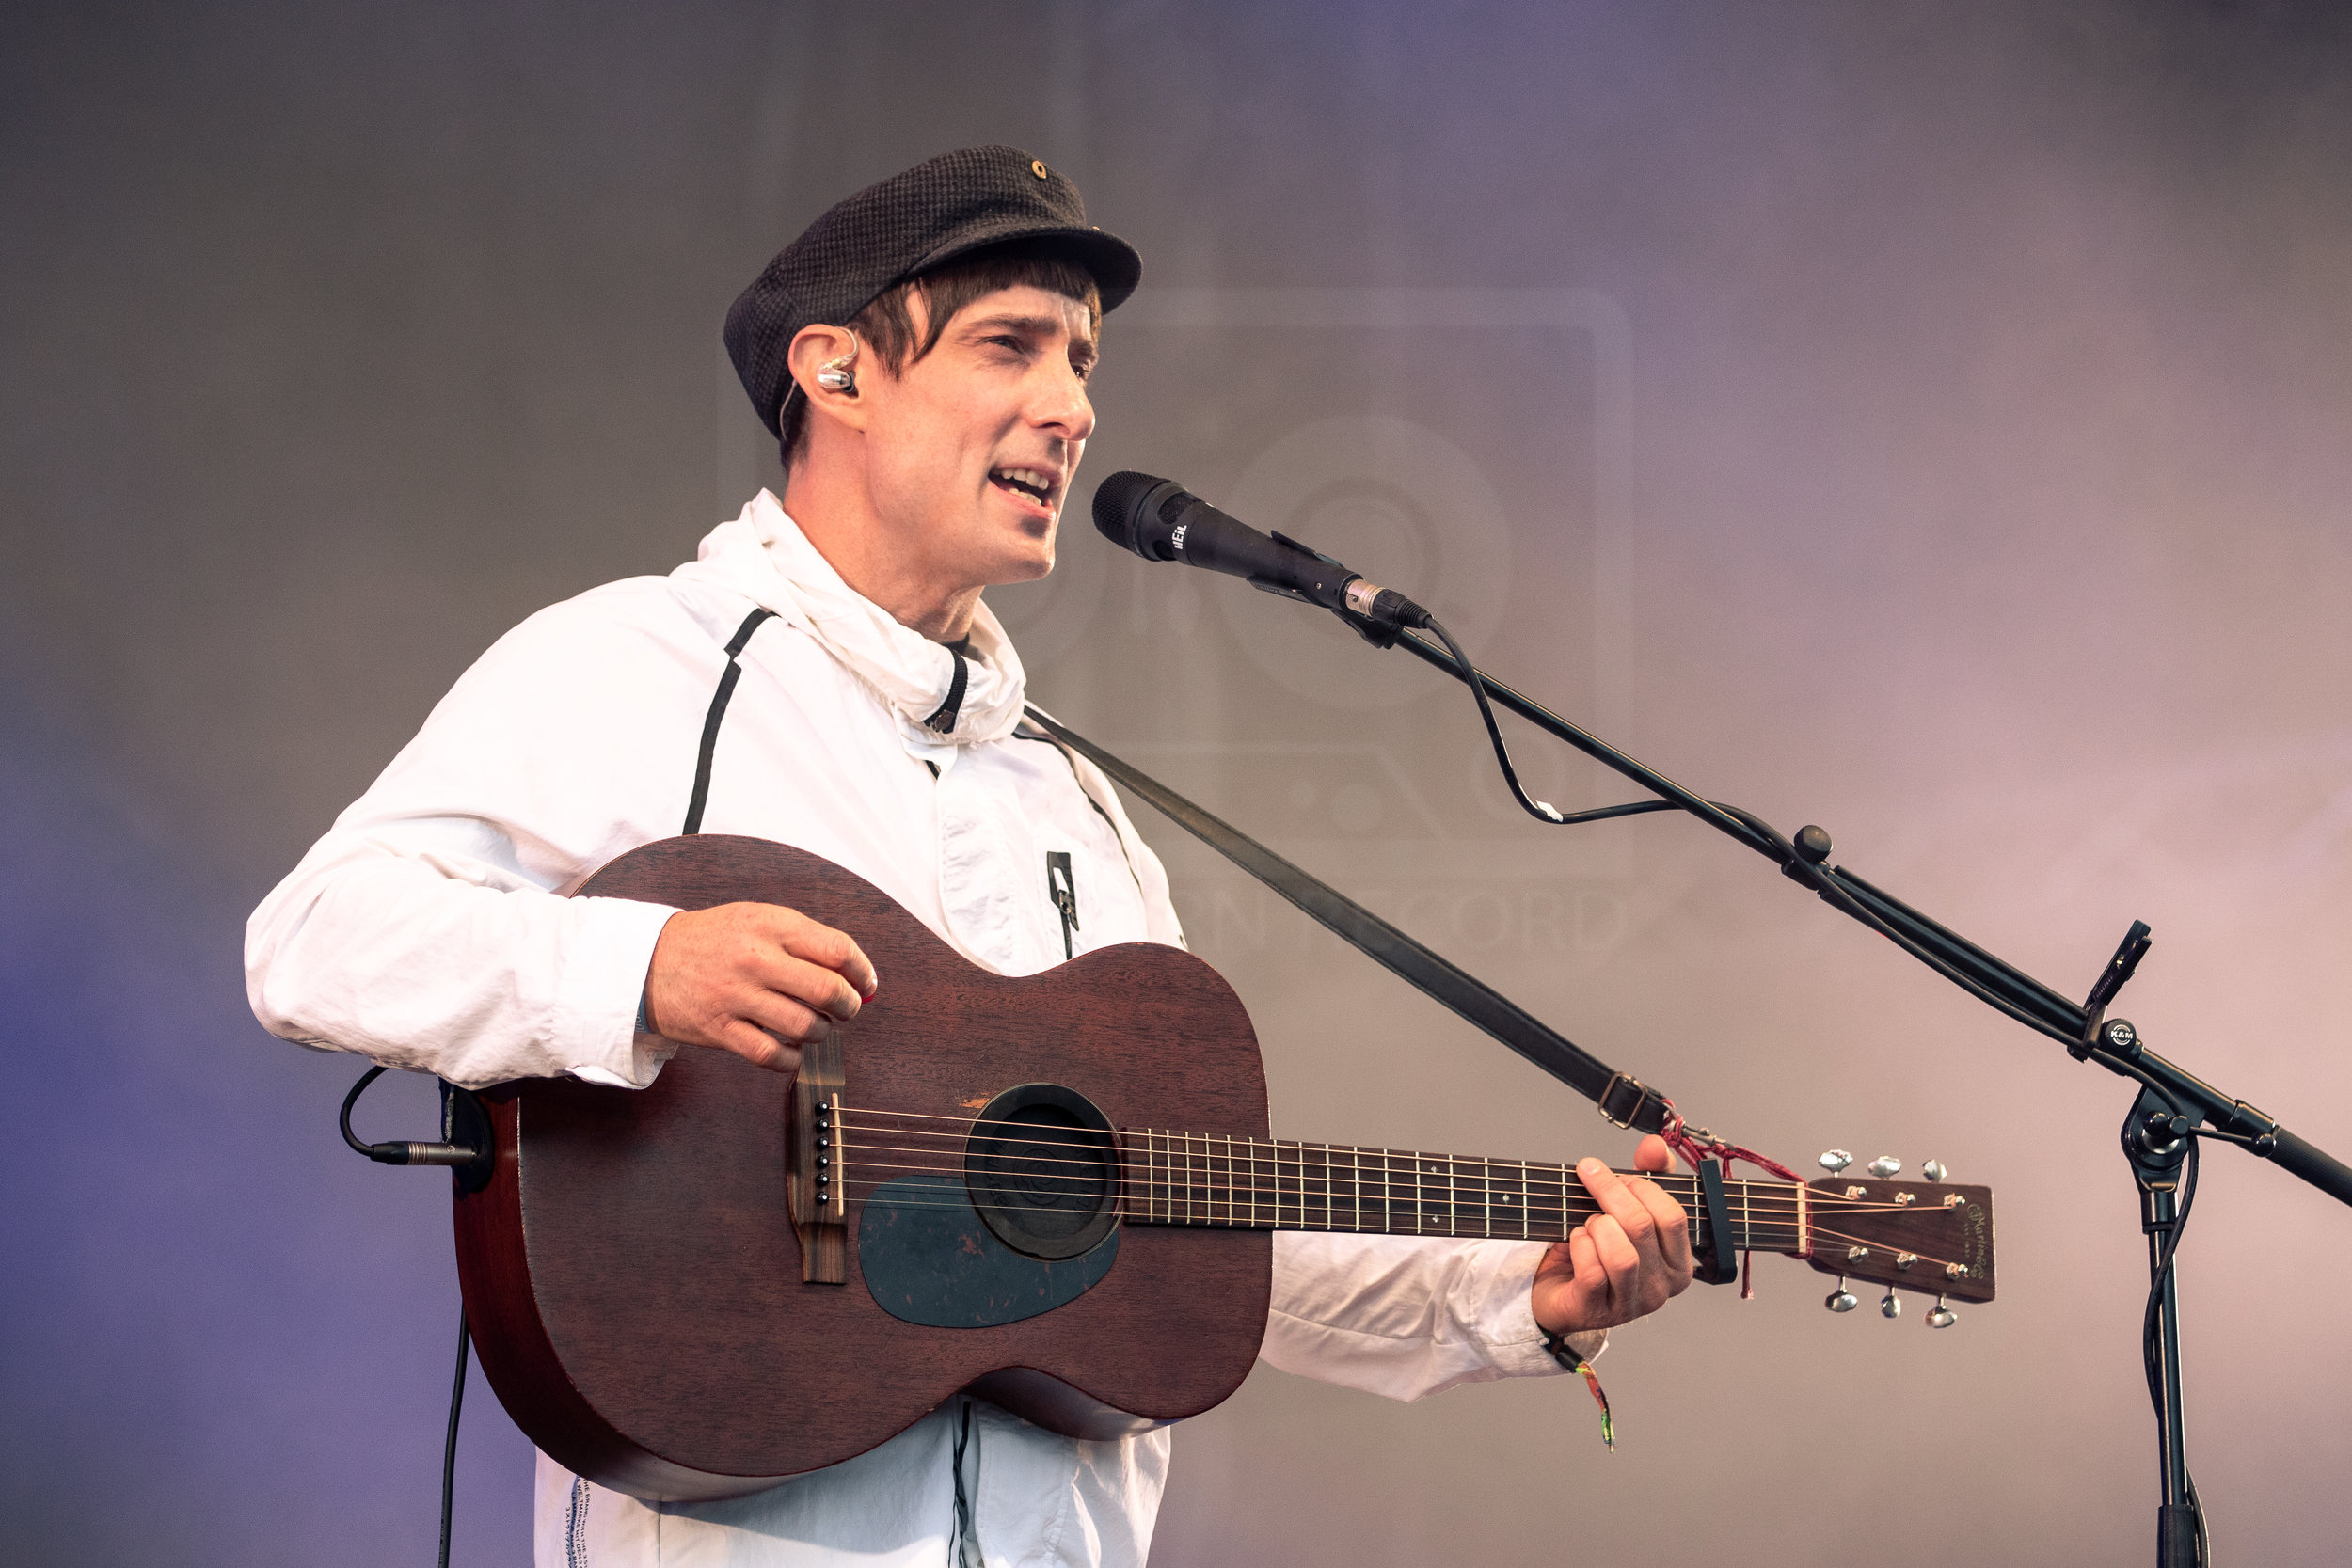 GERRY CINNAMON PERFORMING AT BELLADRUM TARTAN HEART FESTIVAL 2018 - 04.08.2018  PICTURE BY: KENDALL WILSON PHOTOGRAPHY